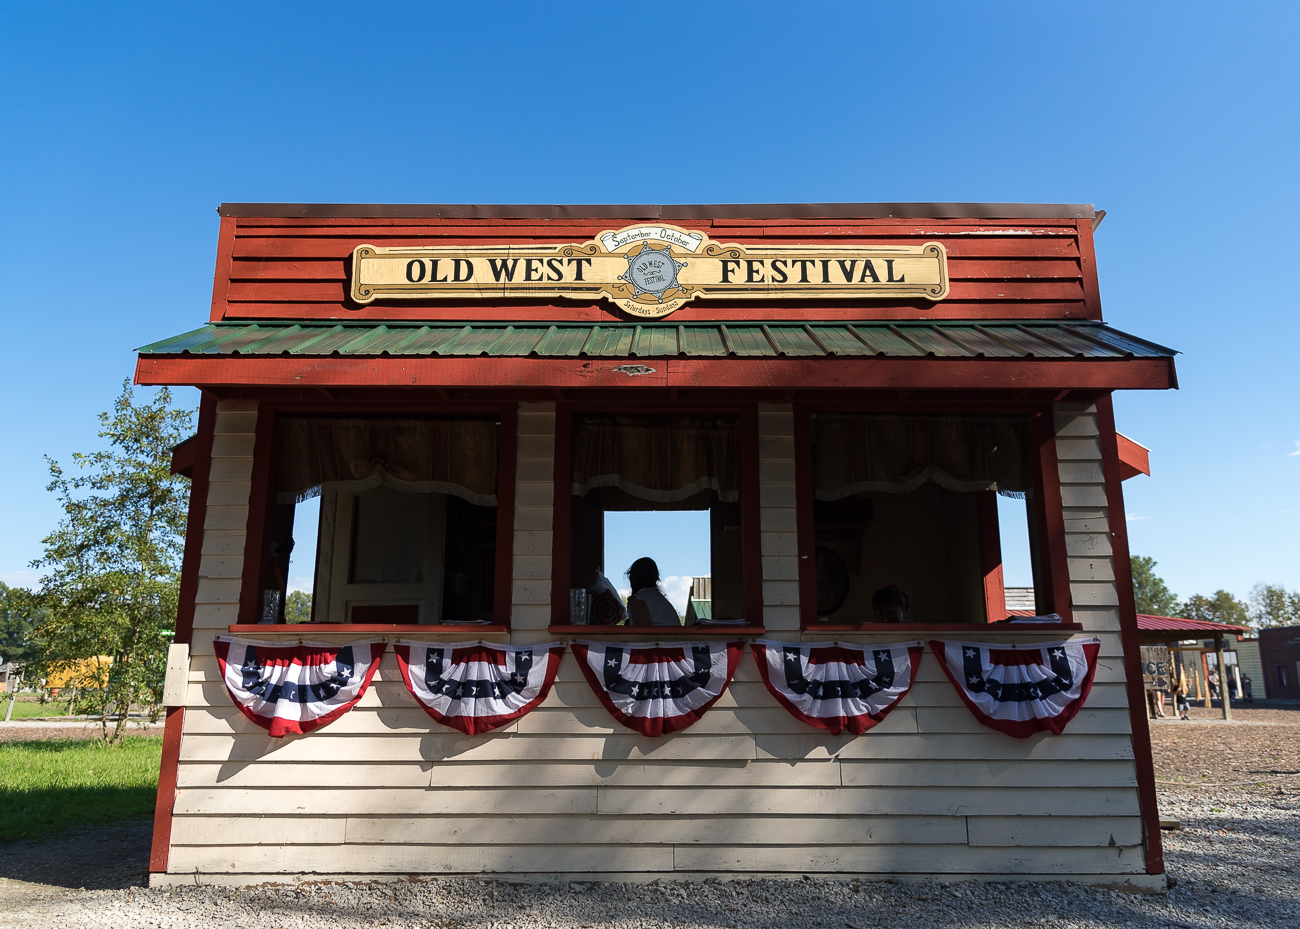 The final weekend of Old West Fest (October 13-14) is Halloween-themed. The festival opens at 10:00 AM and ends at 6:00 PM. Adult admission is $12.99 and child (3-12) admission is $9.99. ADDRESS: 1449 Greenbush Cobb Road (45176) / Image: Phil Armstrong, Cincinnati Refined // Published: 10.8.18